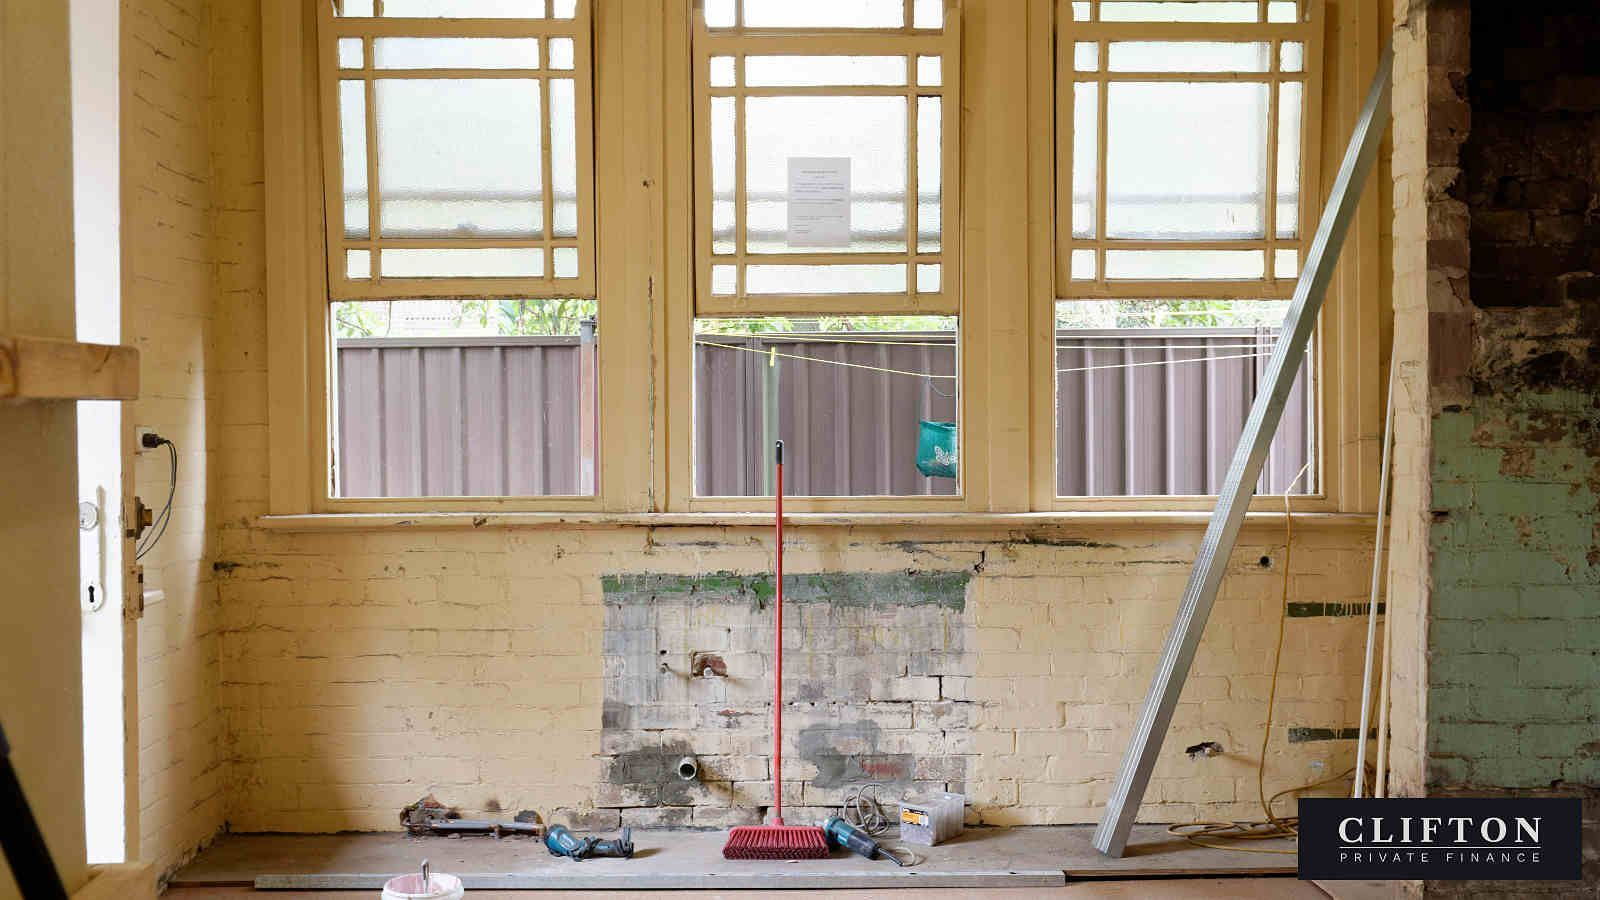 5 Key Questions When Buying And Renovating a Property To Sell